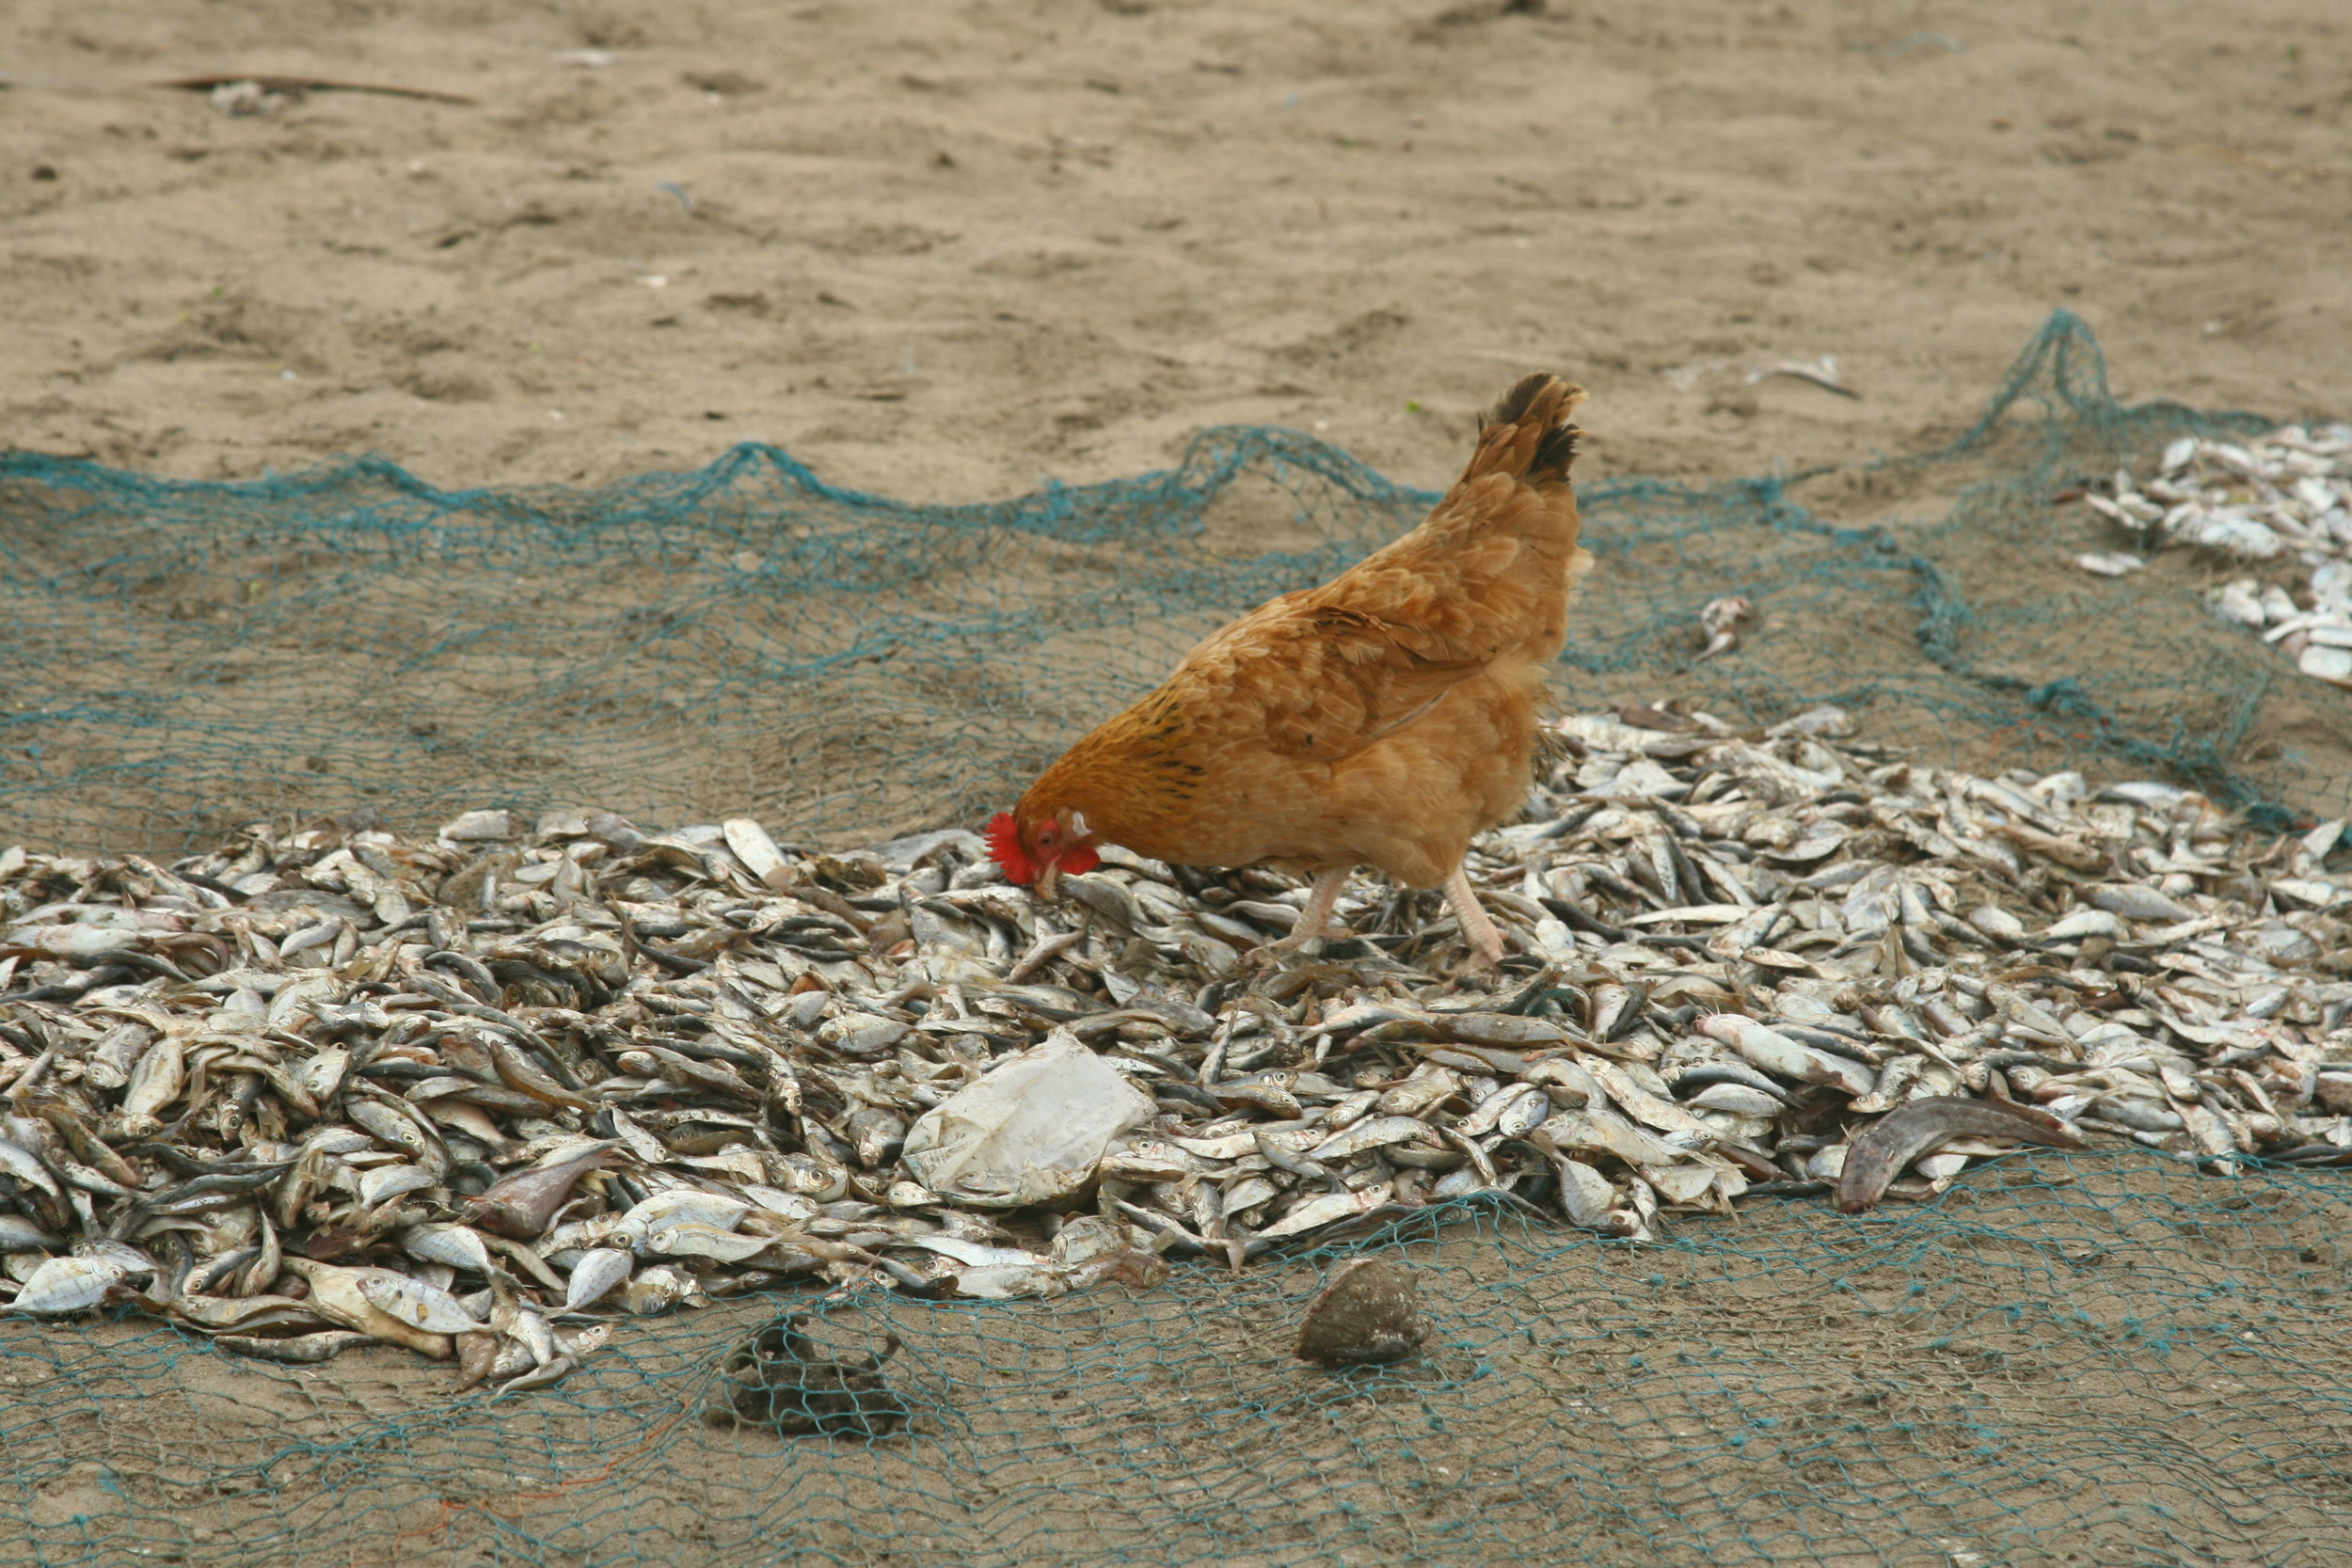 Are chickens herbivores? We are not so sure now...  Photo by Tanvi Vaidyanathan/Project Seahorse.